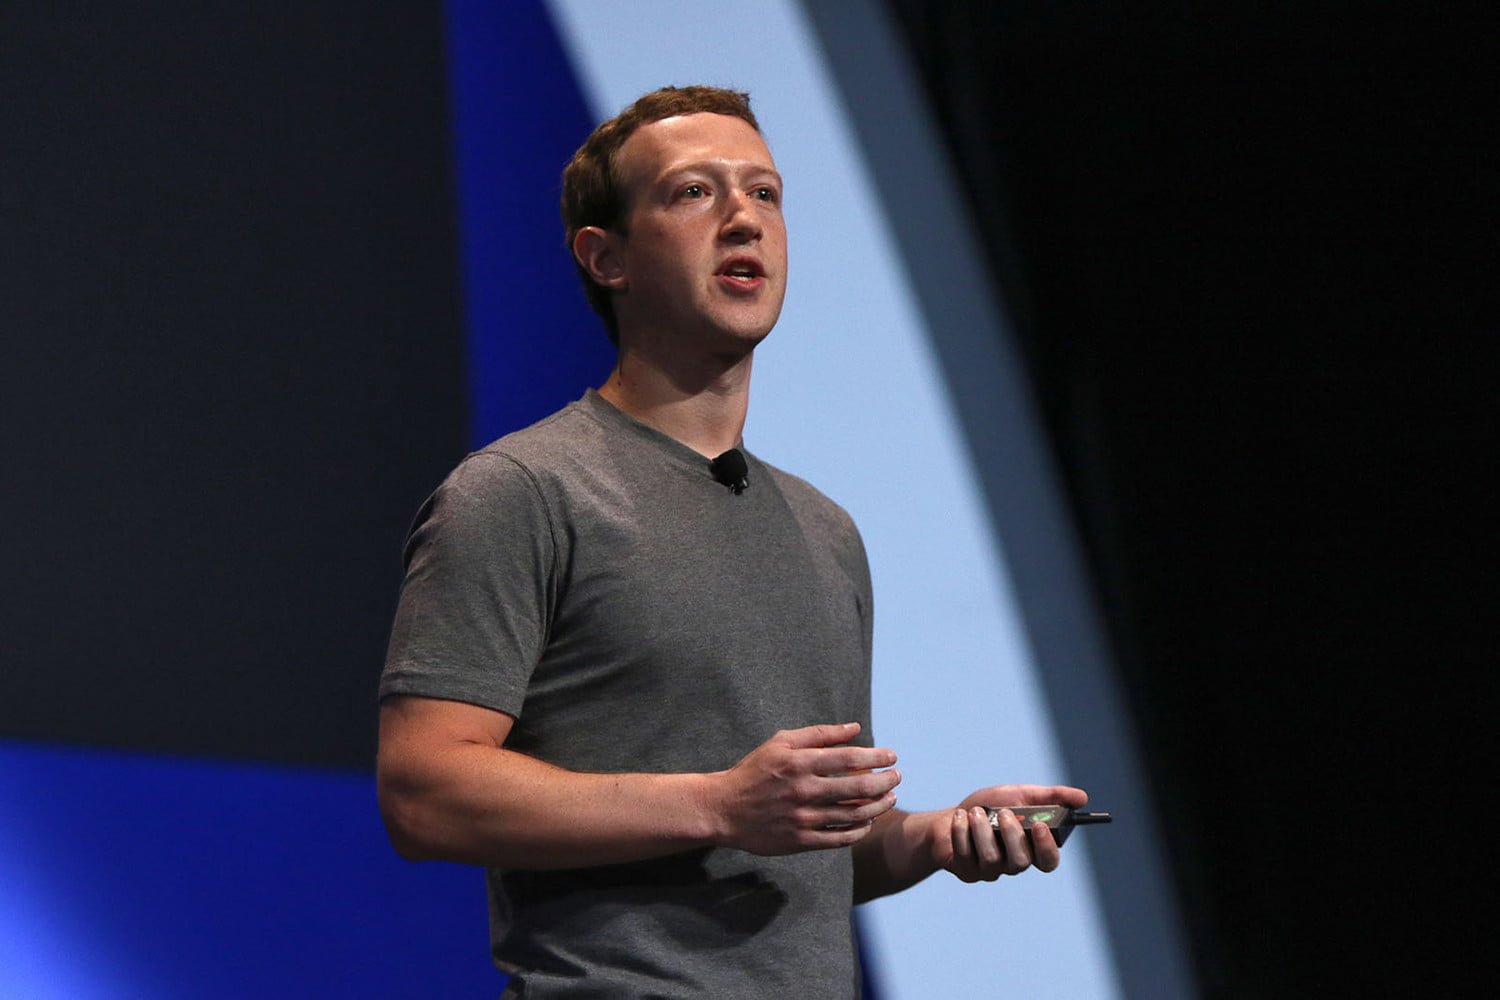 Mark Zuckerberg Pulls Back the Veil on His Jarvis AI System